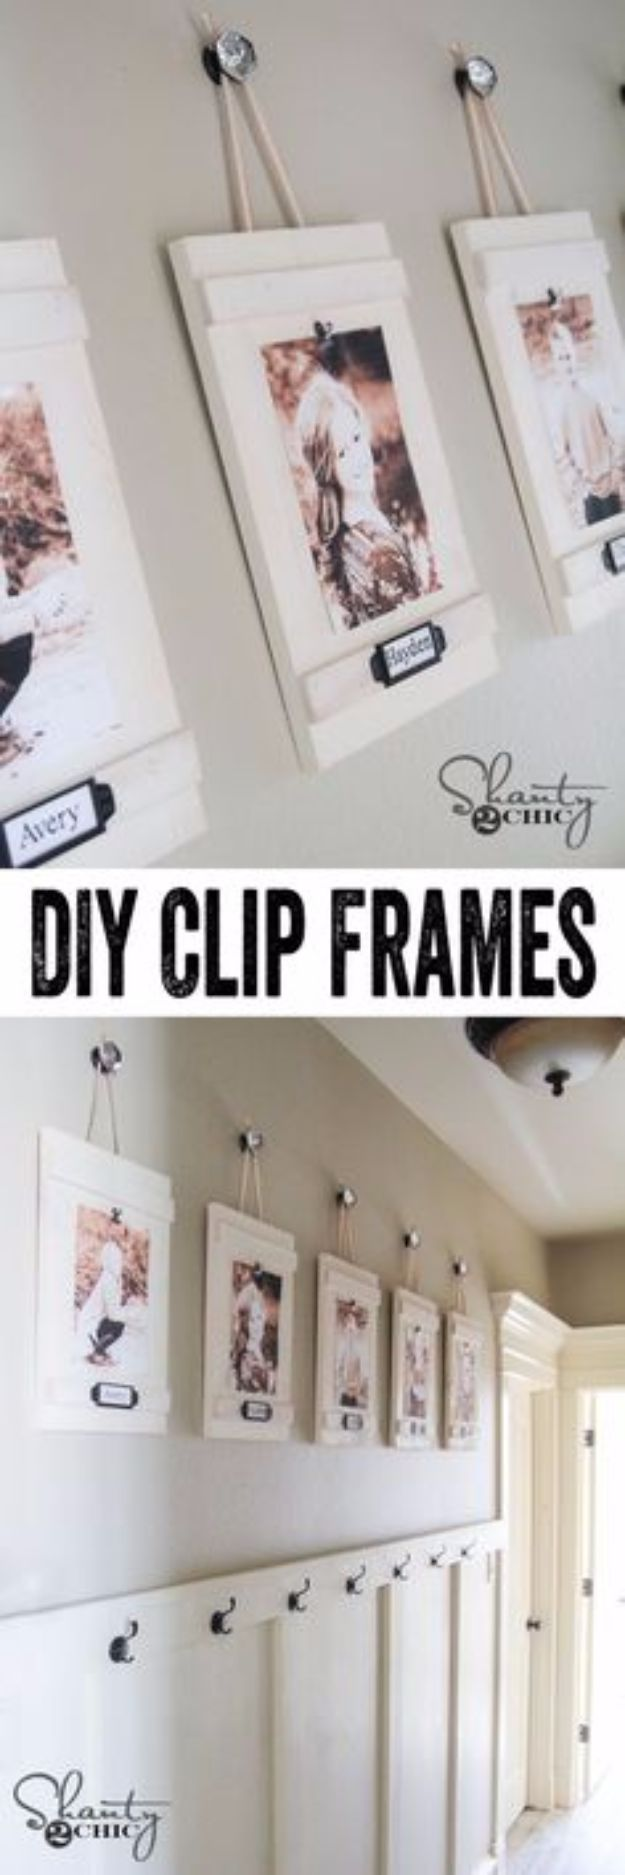 Tips And Tricks For Hanging Photos Frames Diy With Labels Step